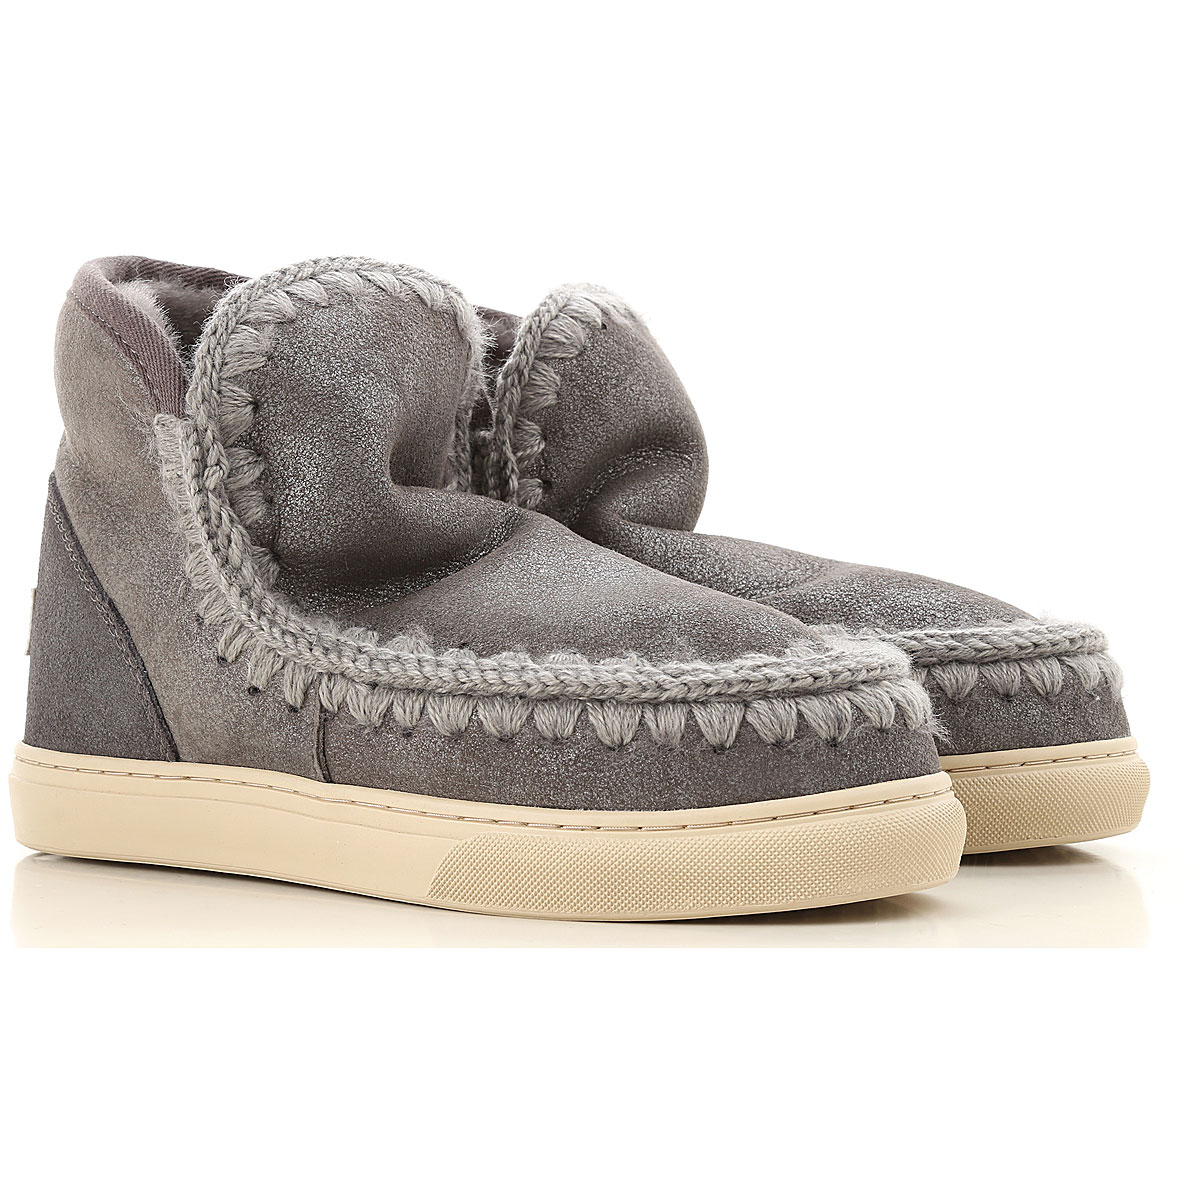 Image of Mou Boots for Women, Booties, Grey, Wool, 2017, EUR 37 - UK 4 - USA 6.5 EUR 38 - UK 5 - USA 7.5 EUR 39 - UK 6 - USA 8.5 EUR 40 - UK 7 - USA 9.5 EUR 41 - UK 8 - USA 10.5